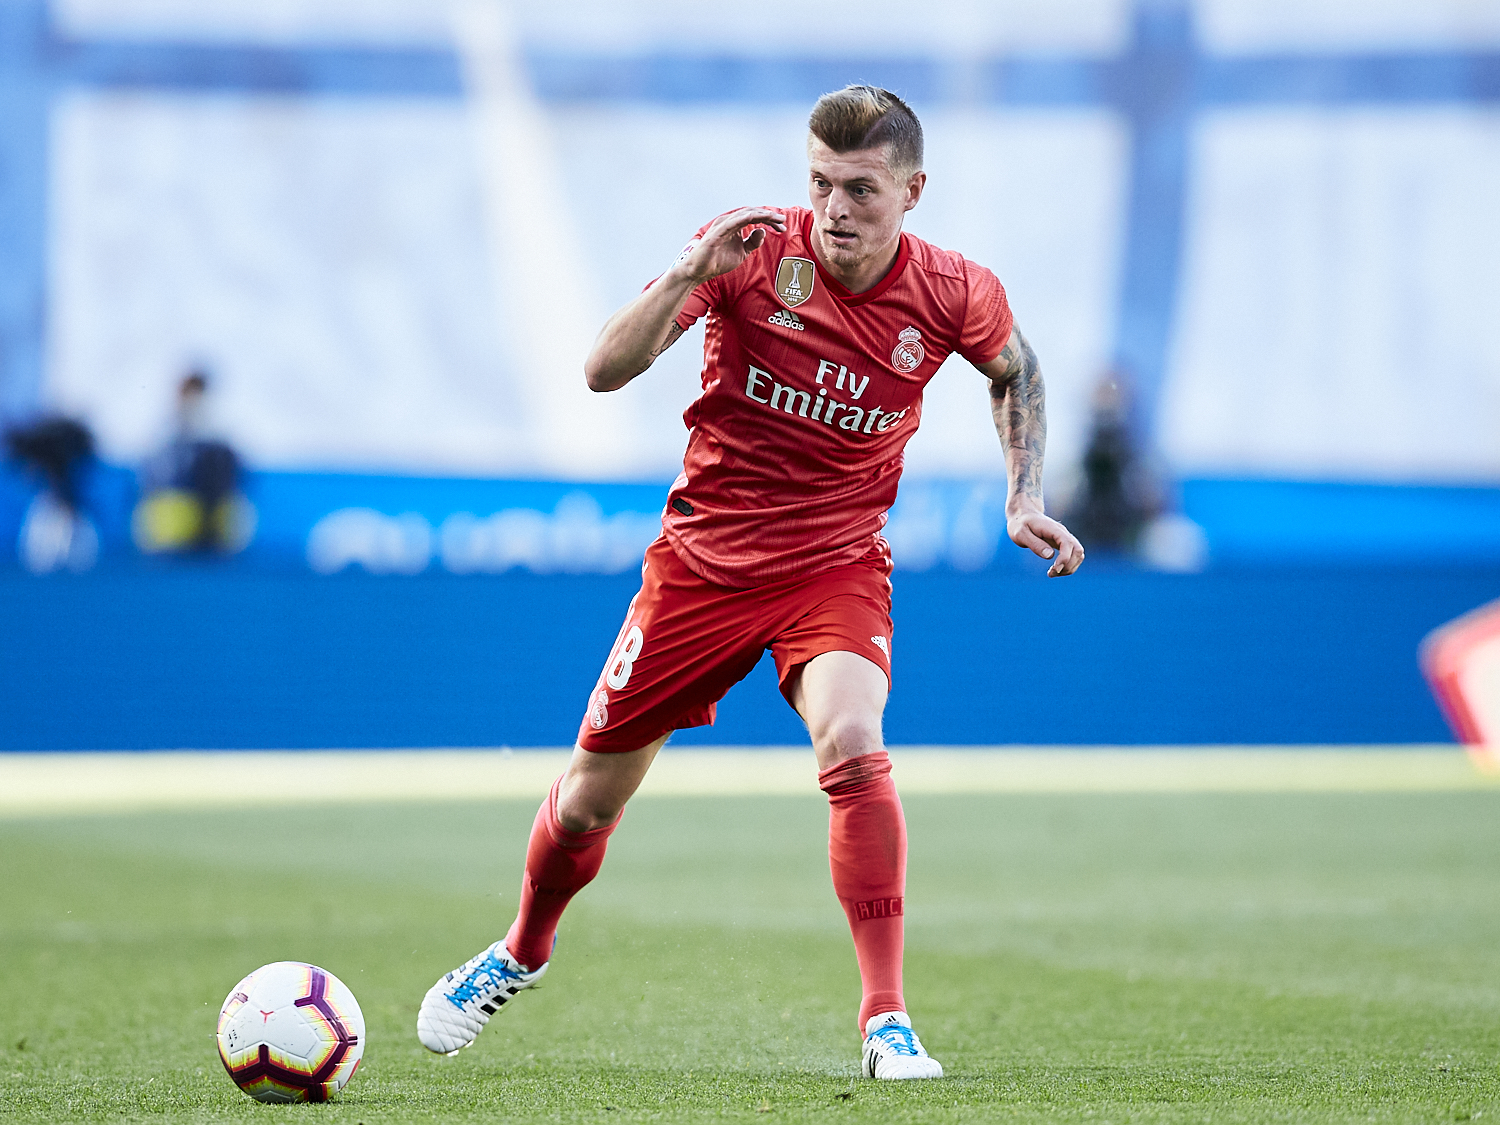 Football - Transferts - Le journal du mercato: Kroos prolonge au Real